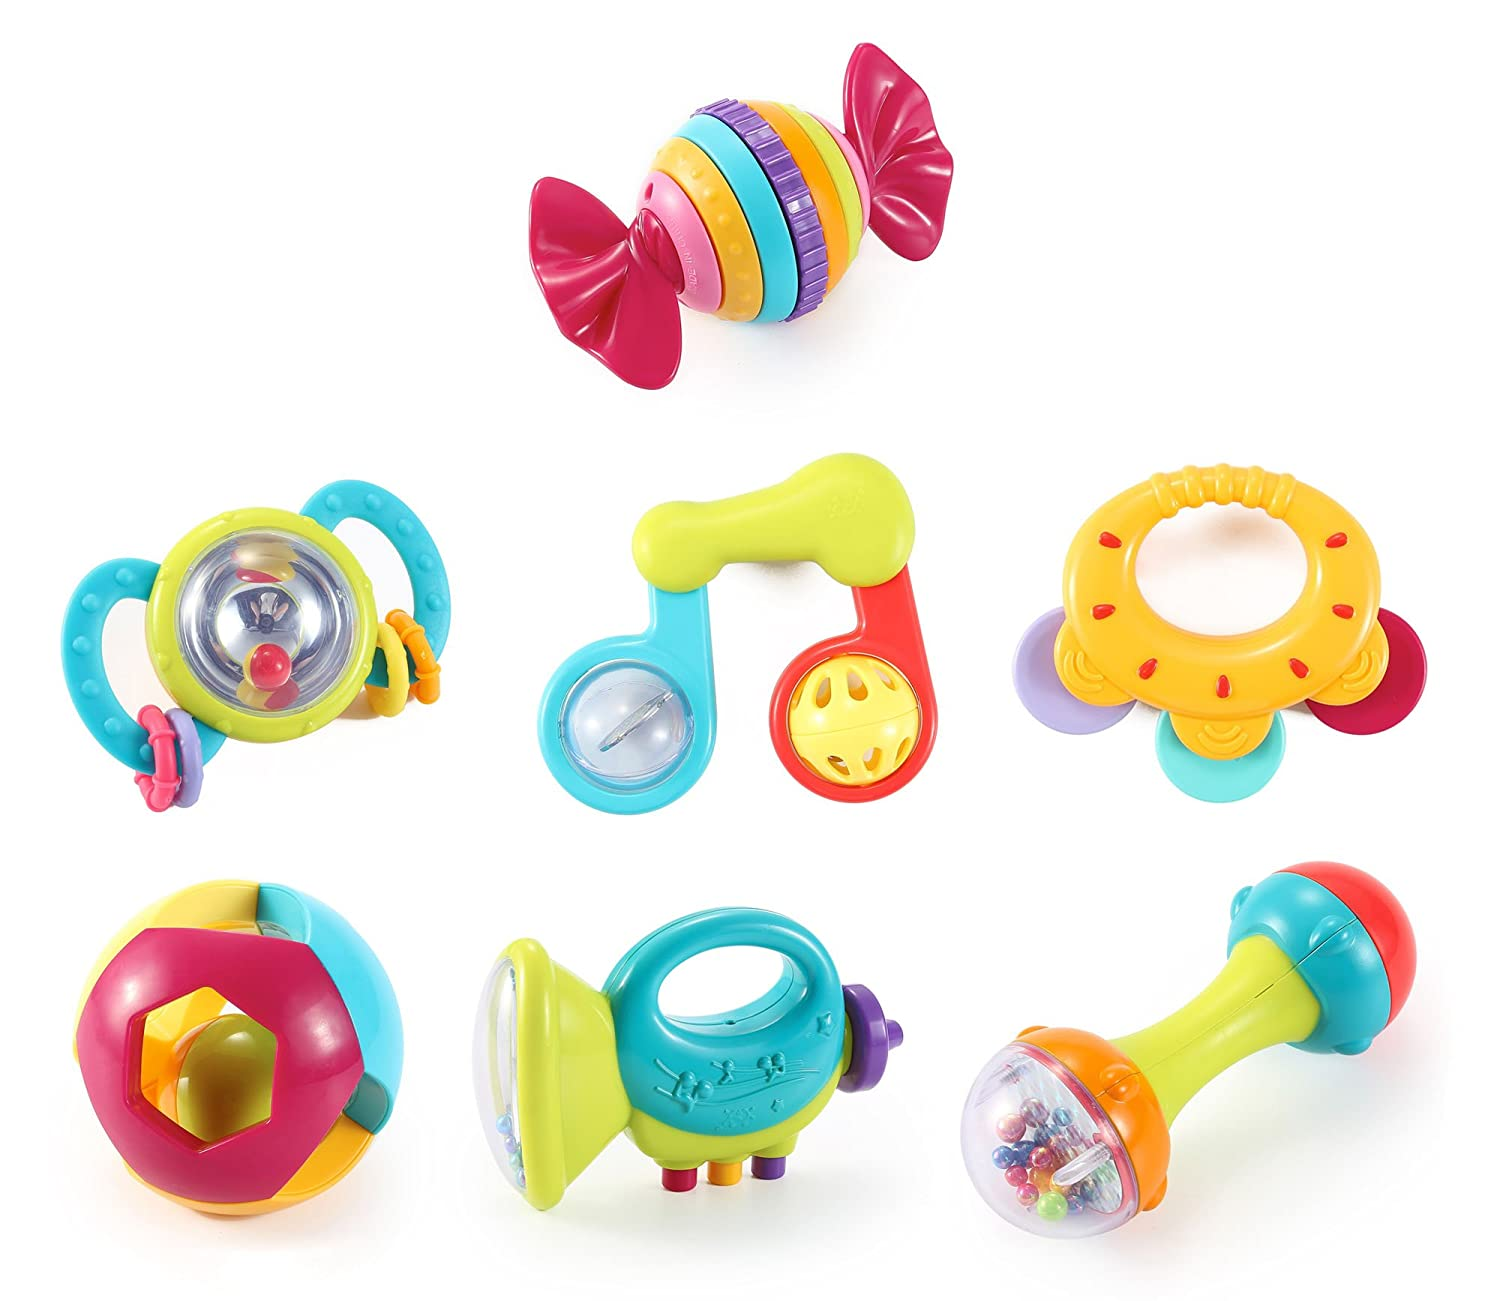 The Best Musical Baby Toys and Gifts For Your Baby